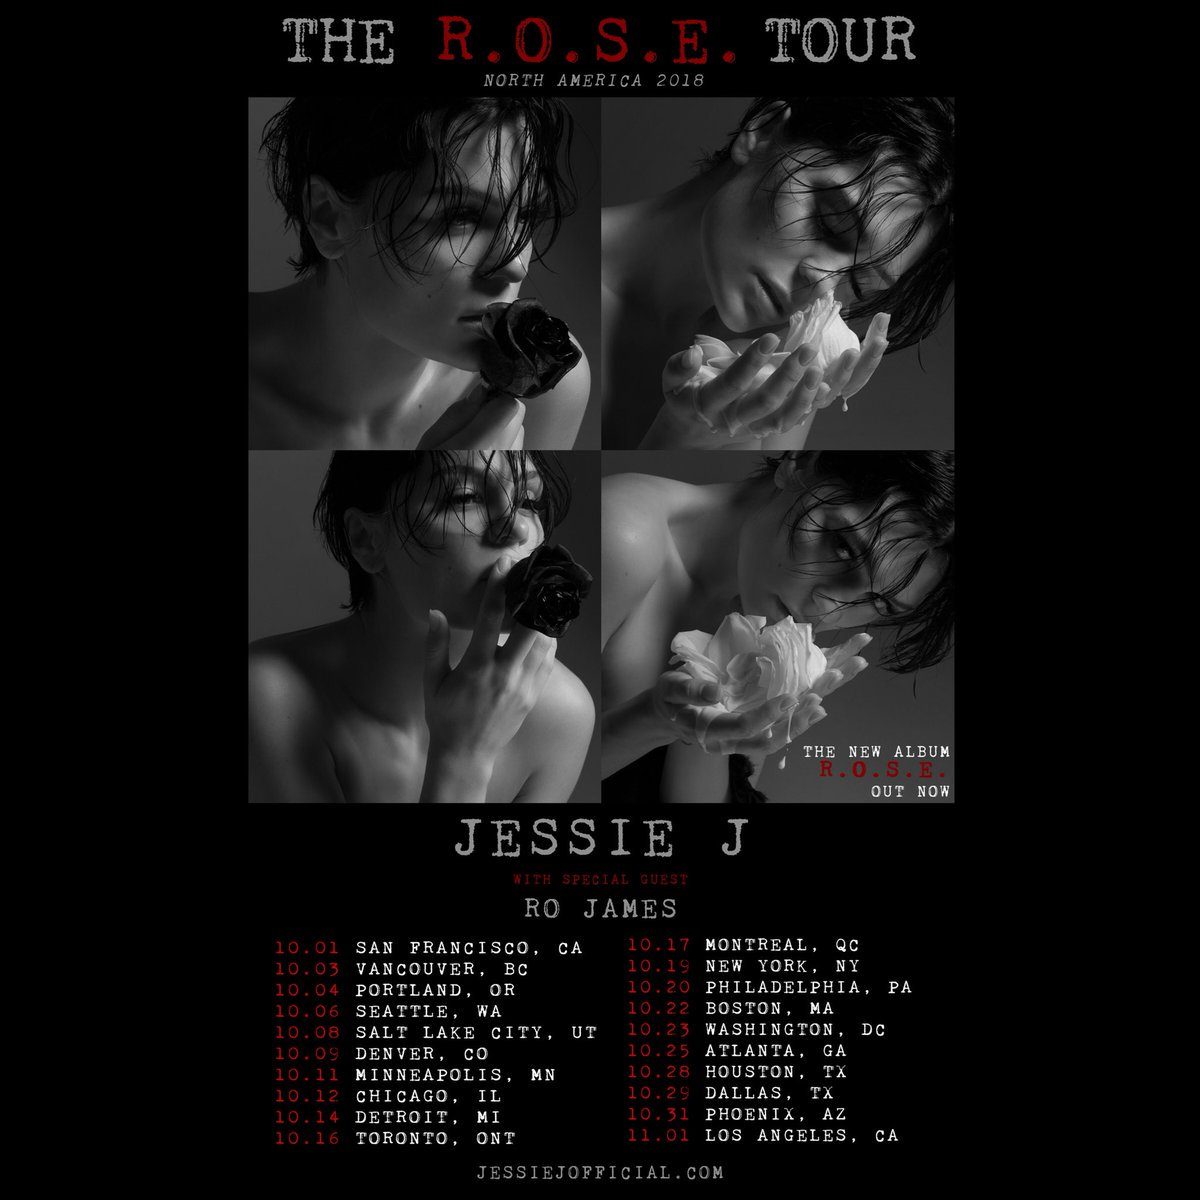 RT @UMG: #ICYMI - @JessieJ is hitting the road on THE R.O.S.E. TOUR! Tickets on sale tomorrow at 10 a.m. https://t.co/2fkelzHAJ7